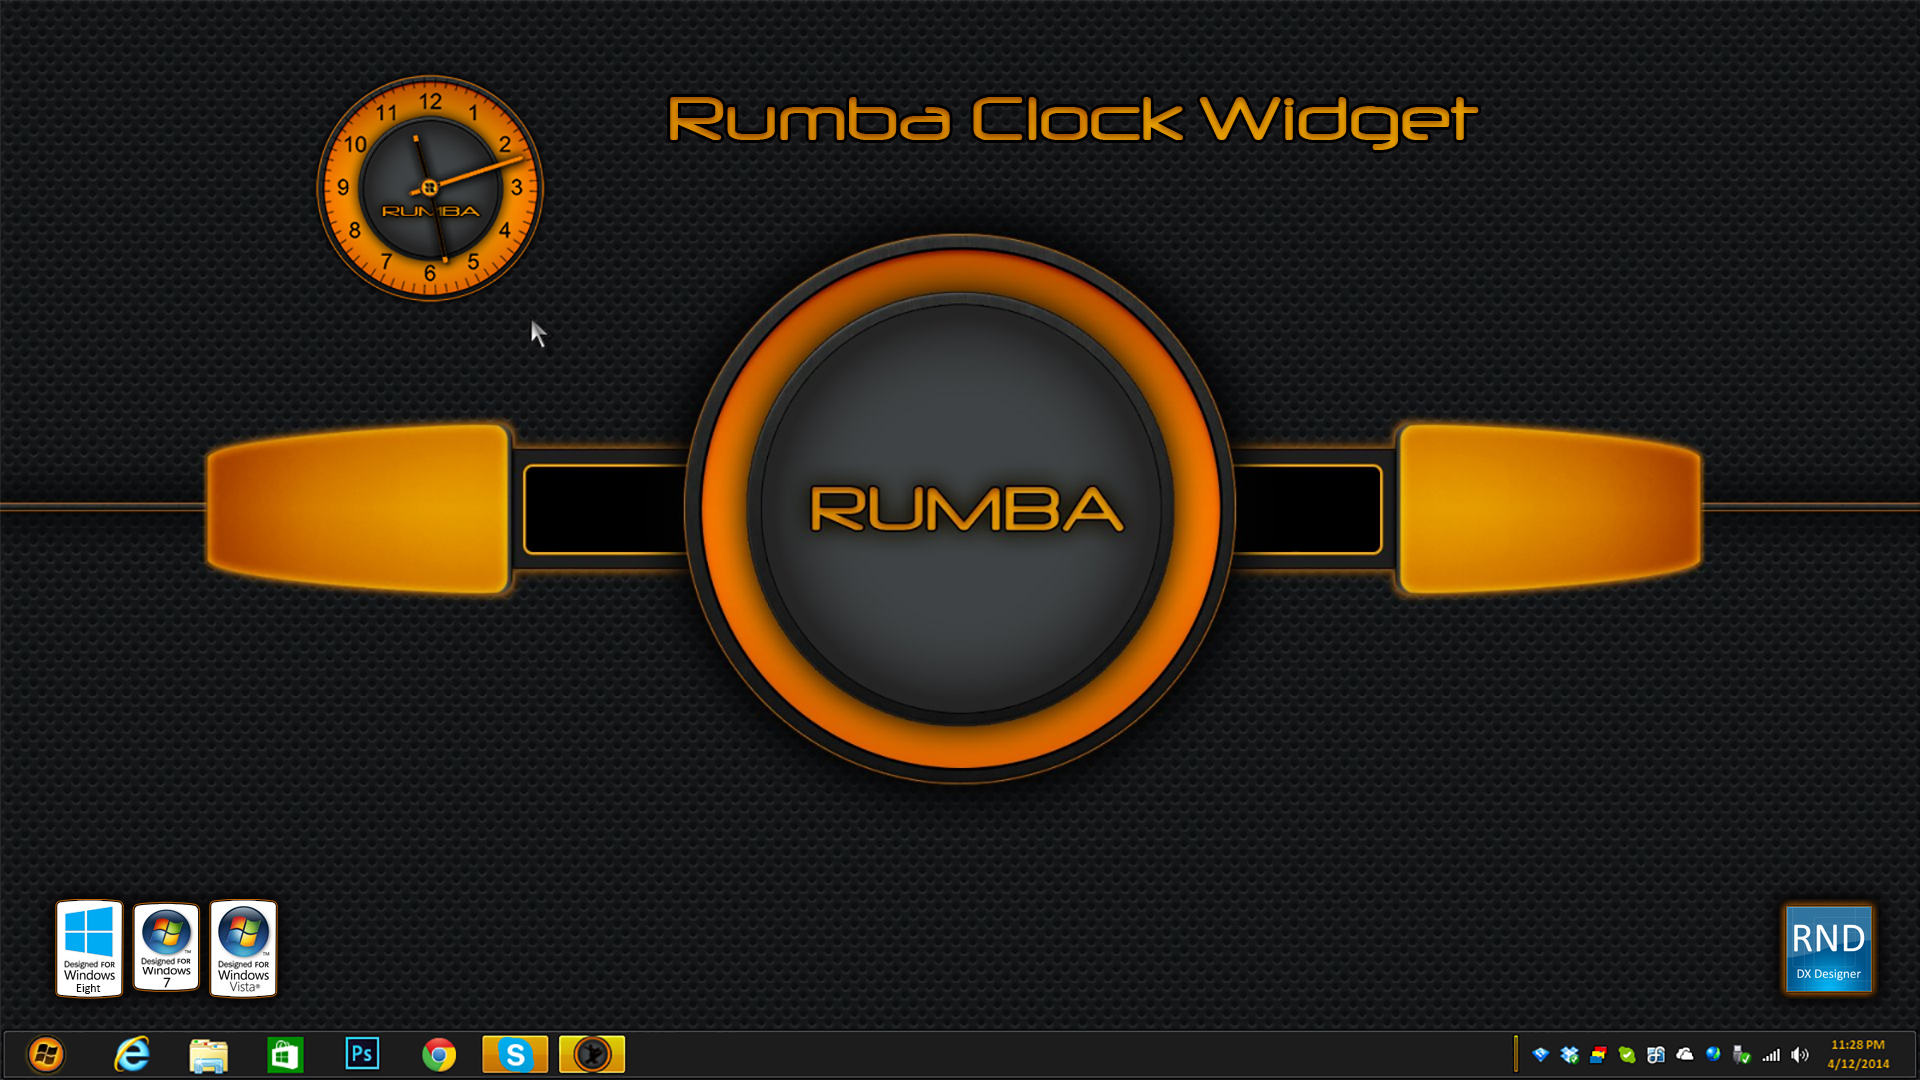 Rumba Clock Widget